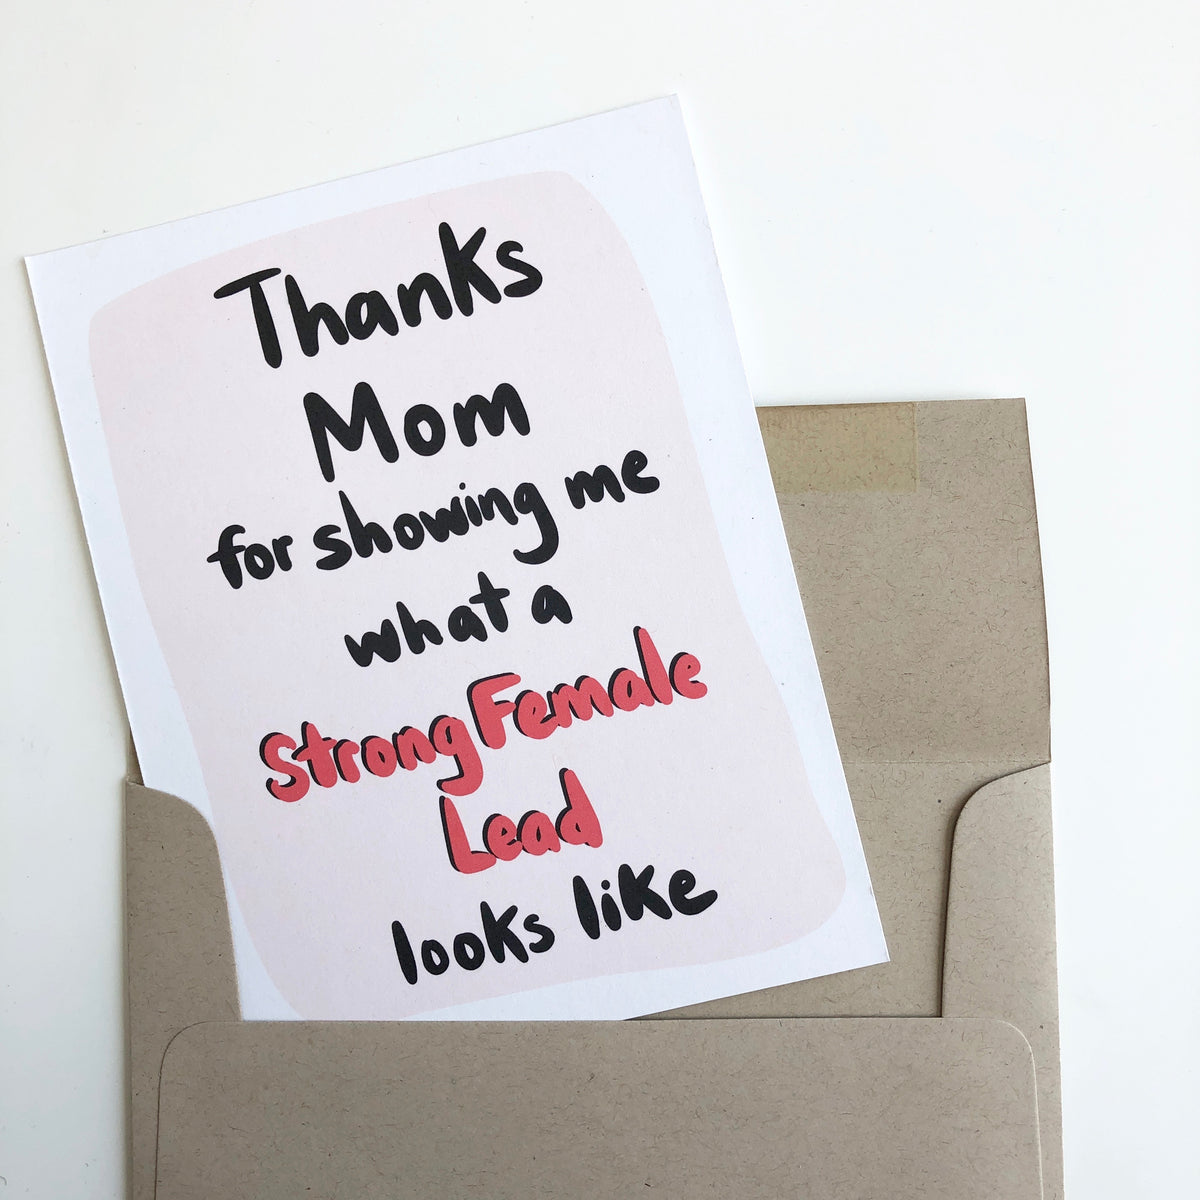 Strong Female Lead Mother's Day Card